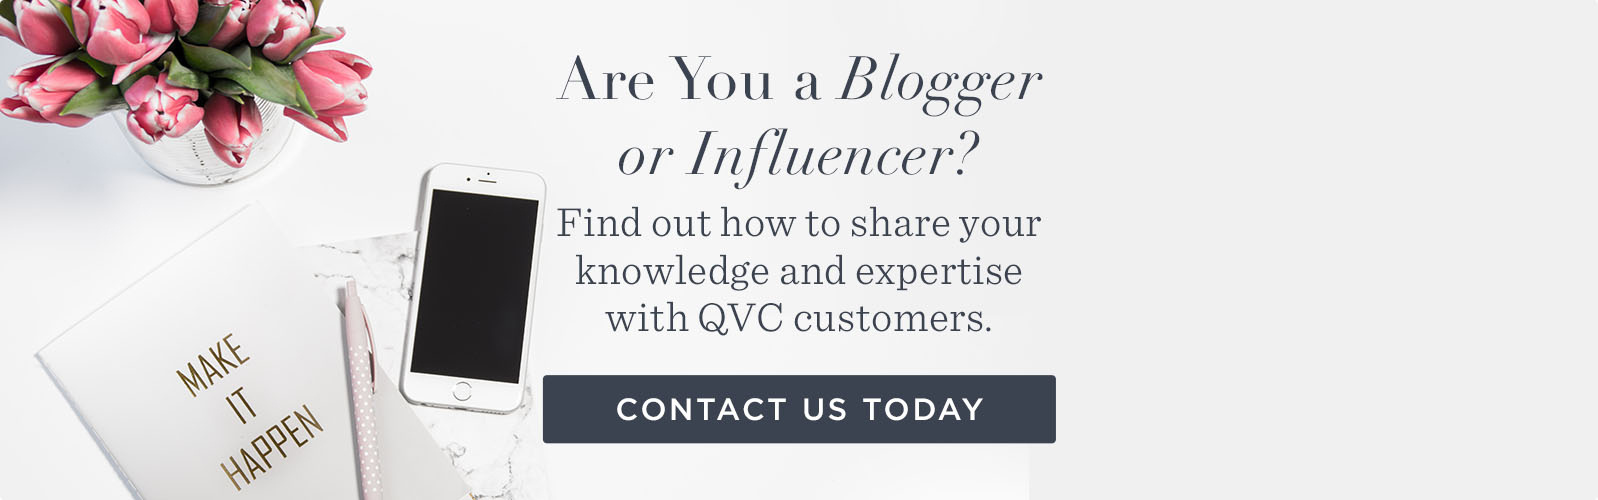 Are You a Blogger or Influencer? Find out how to share your knowledge and expertise with QVC customers. CONTACT US TODAY